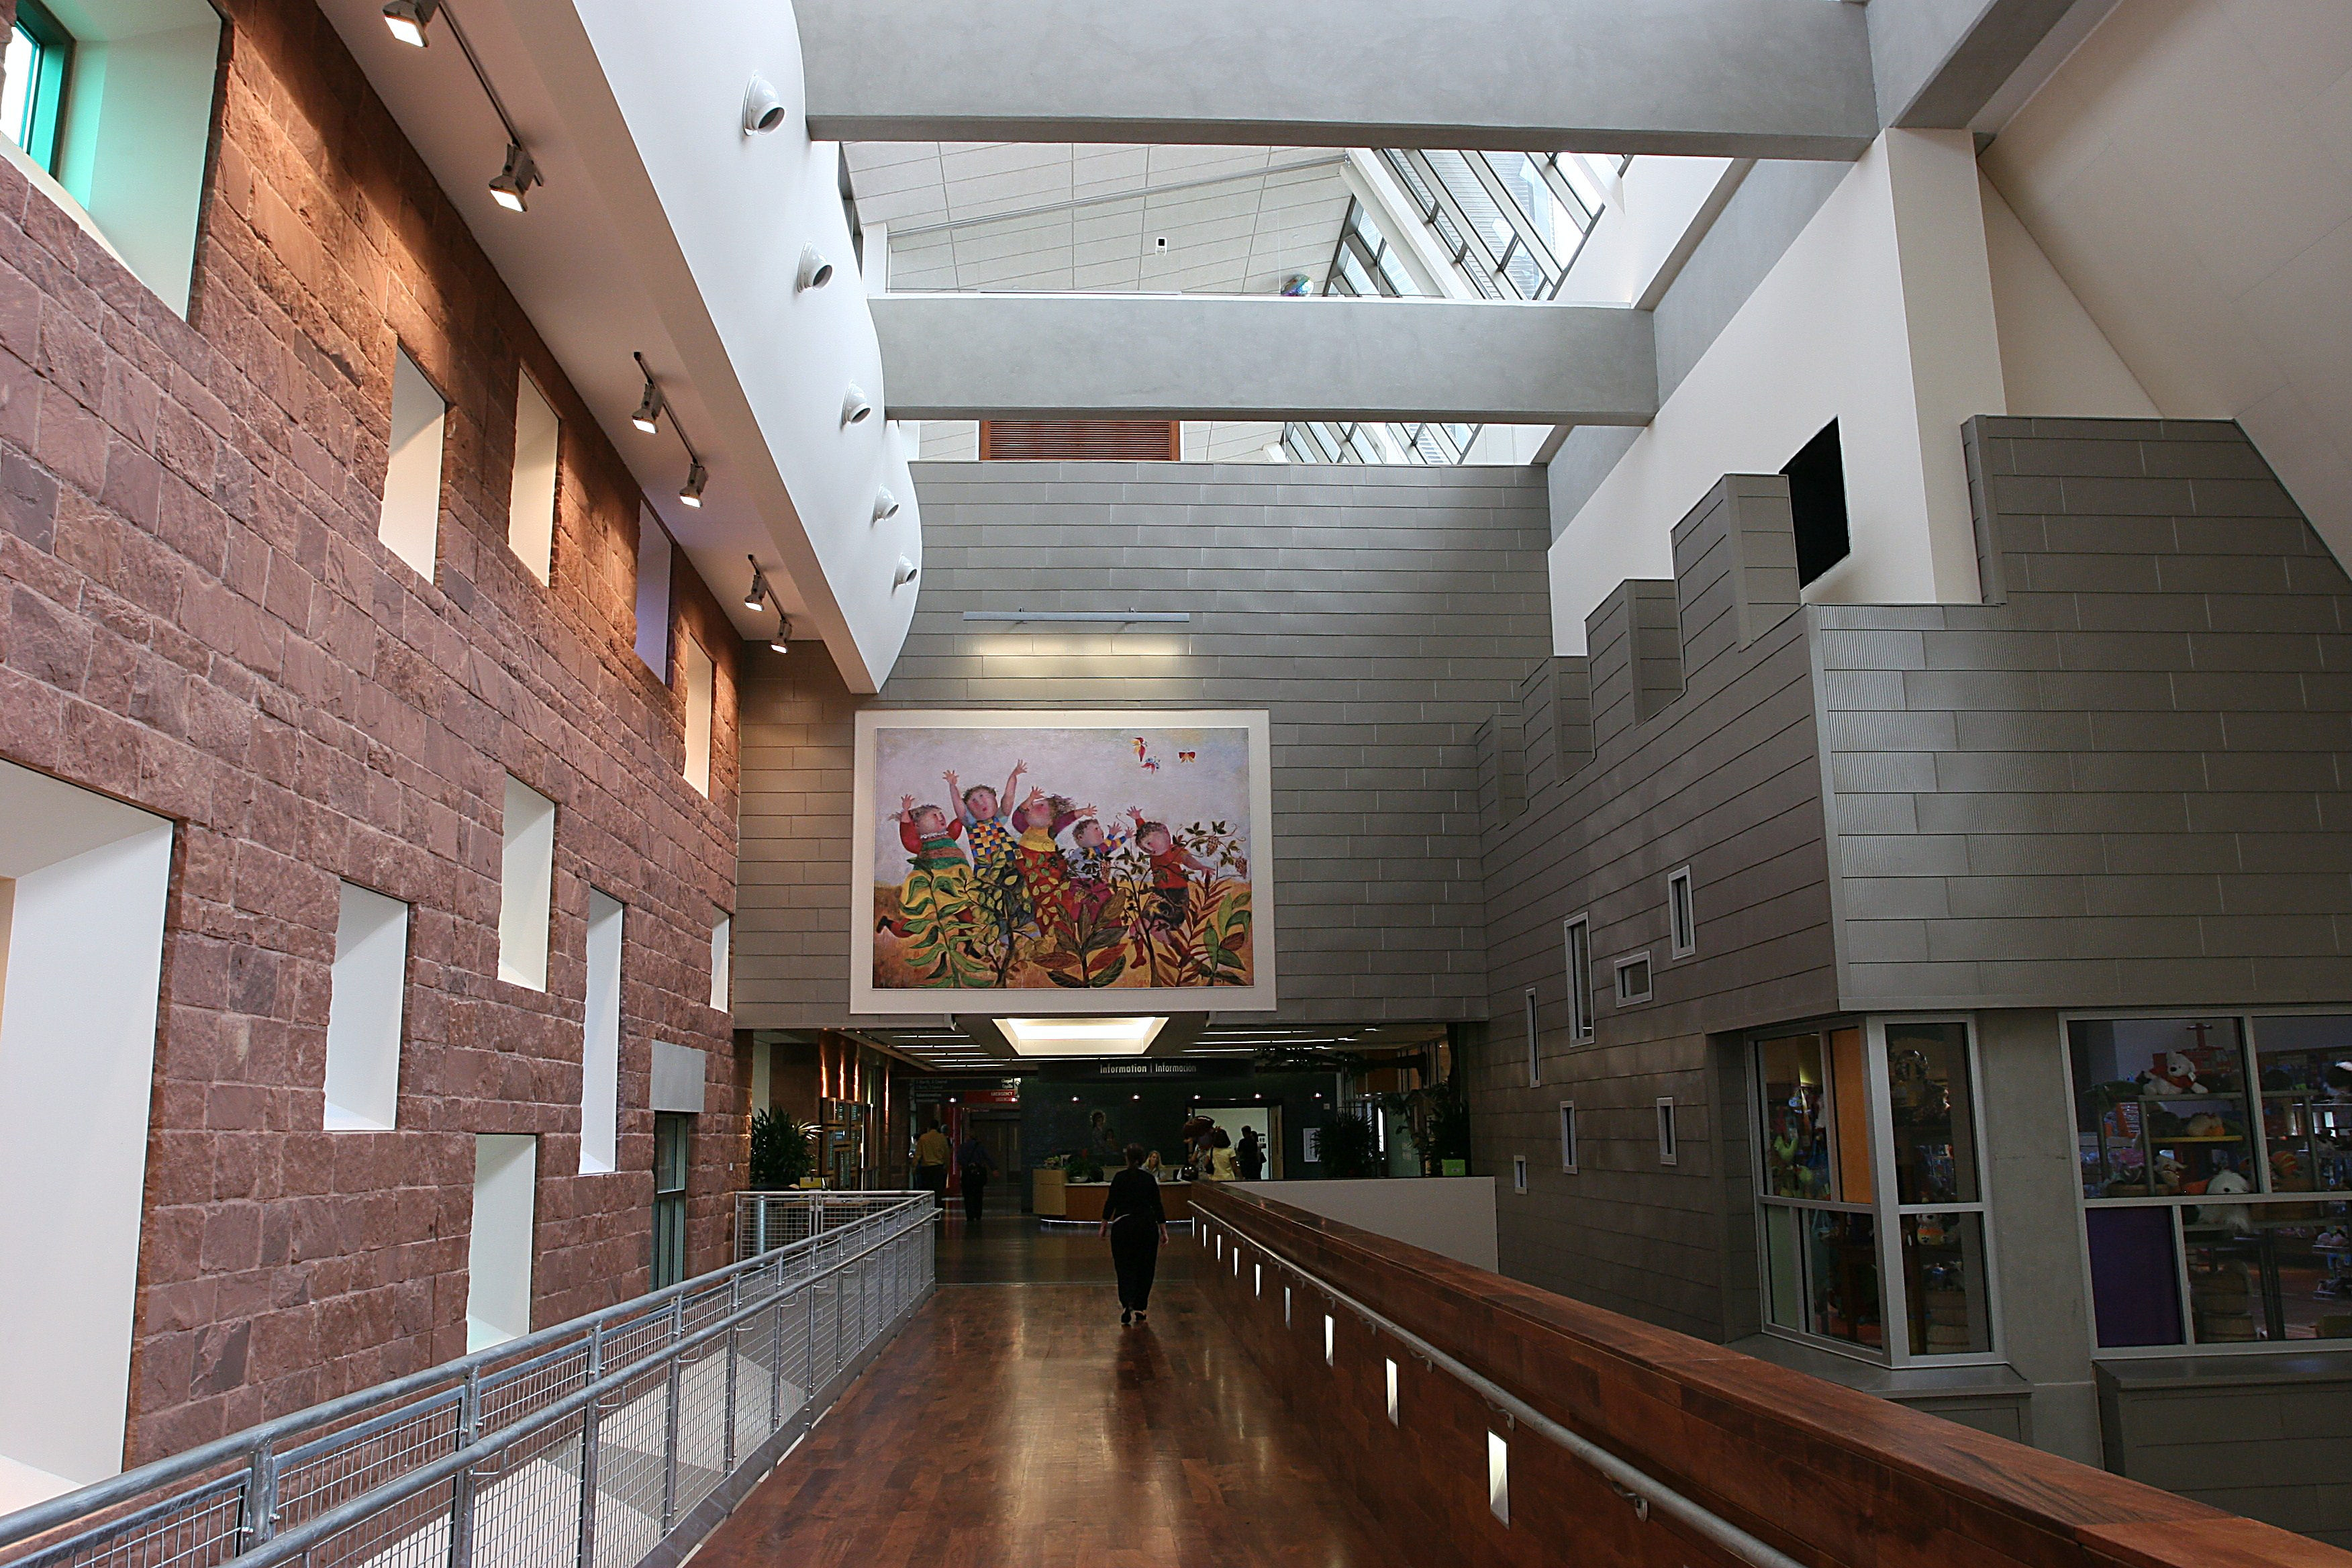 Inside the atrium area of Dell Childrens Medical Center.